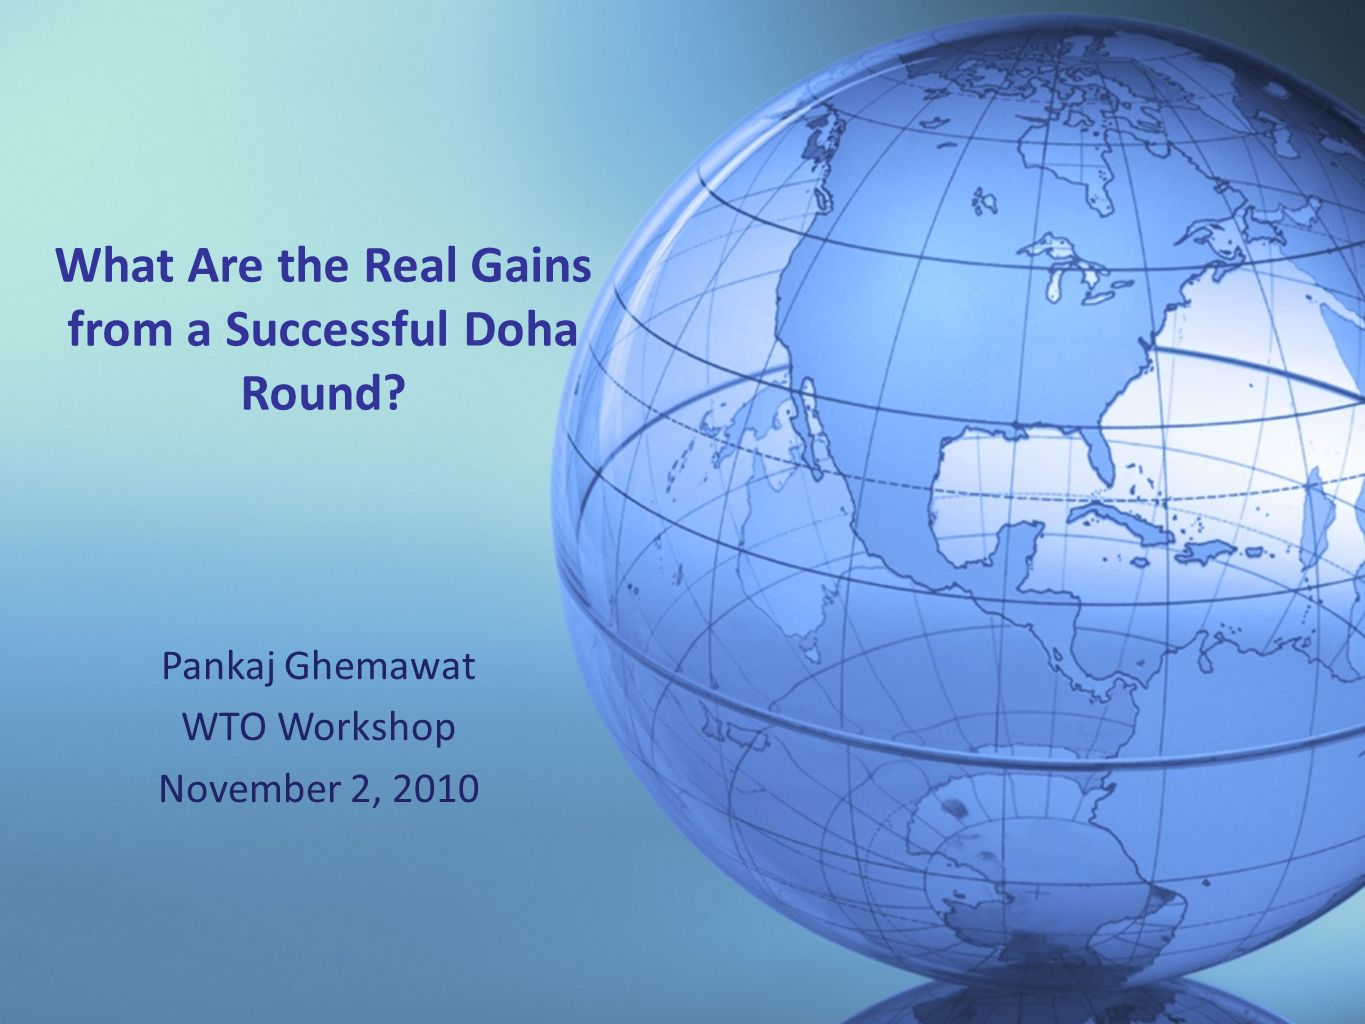 What Are the Real Gains from a Successful Doha Round